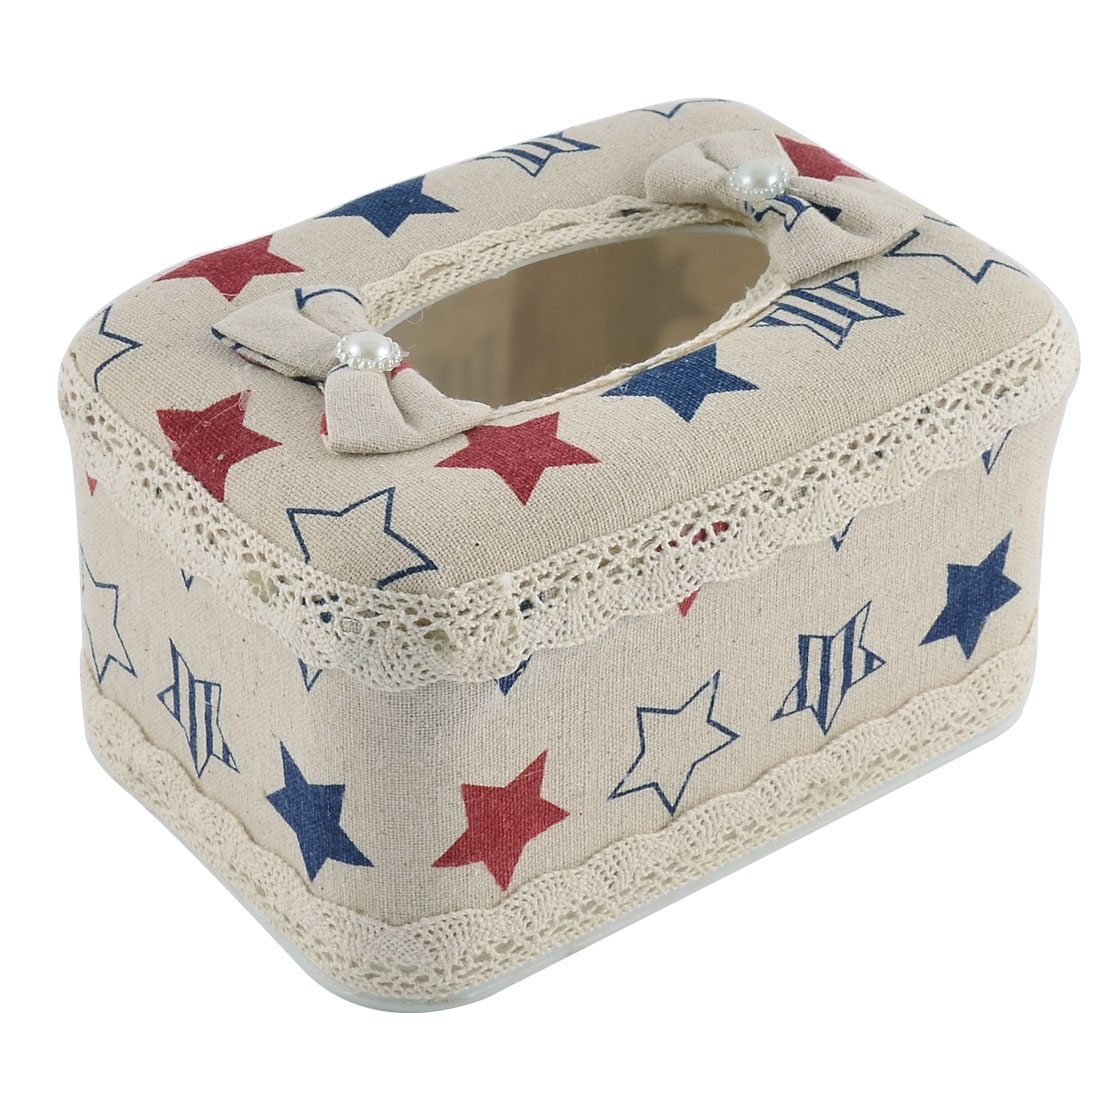 Household Bathroom Rectangle Shaped Star Pattern Napkin Paper Tissue Box Case Holder Cover Storage